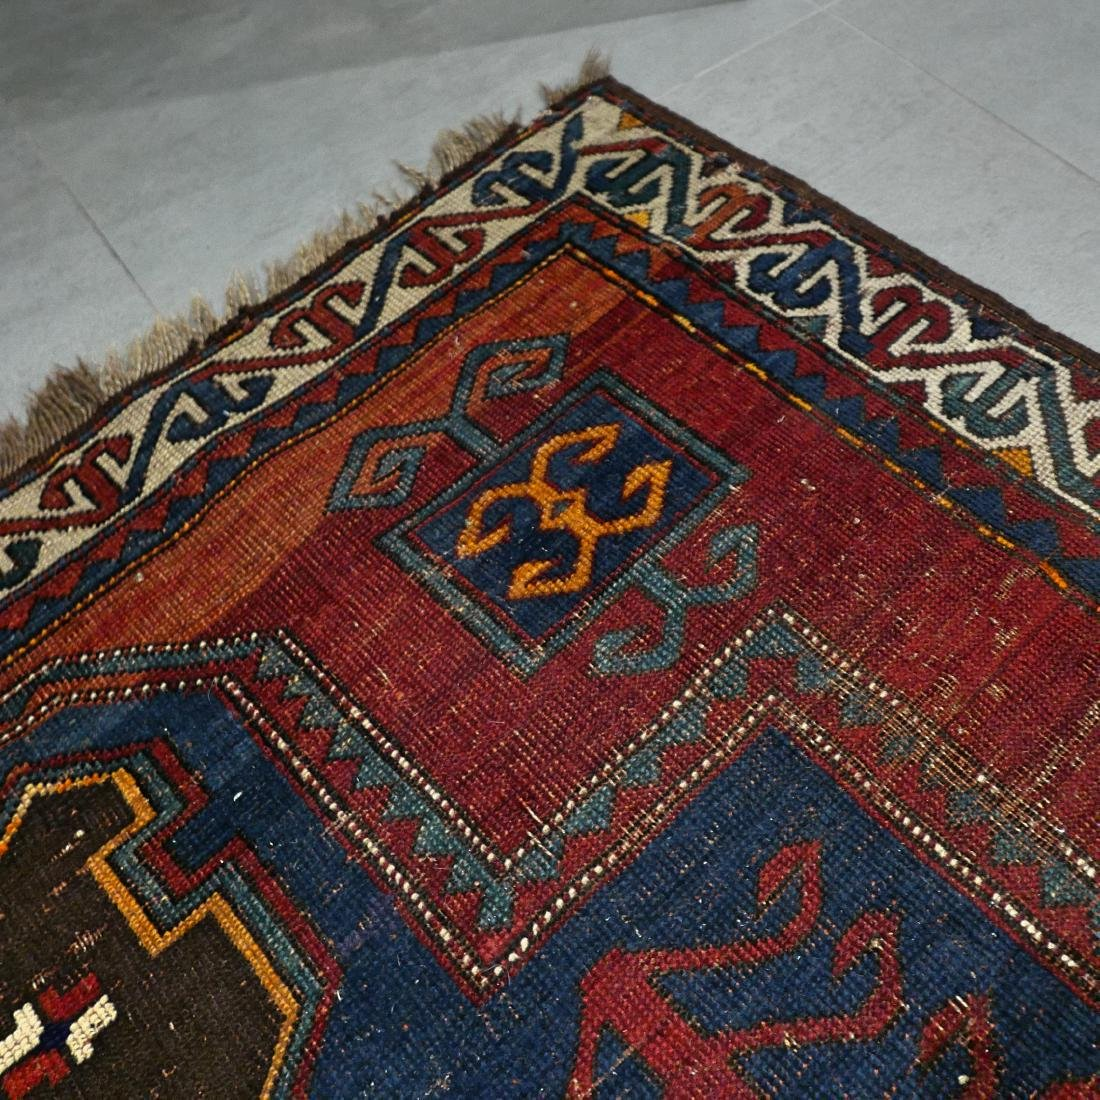 6.6 x 4.6 Caucasian Kazak rug - early 1900s - - 4